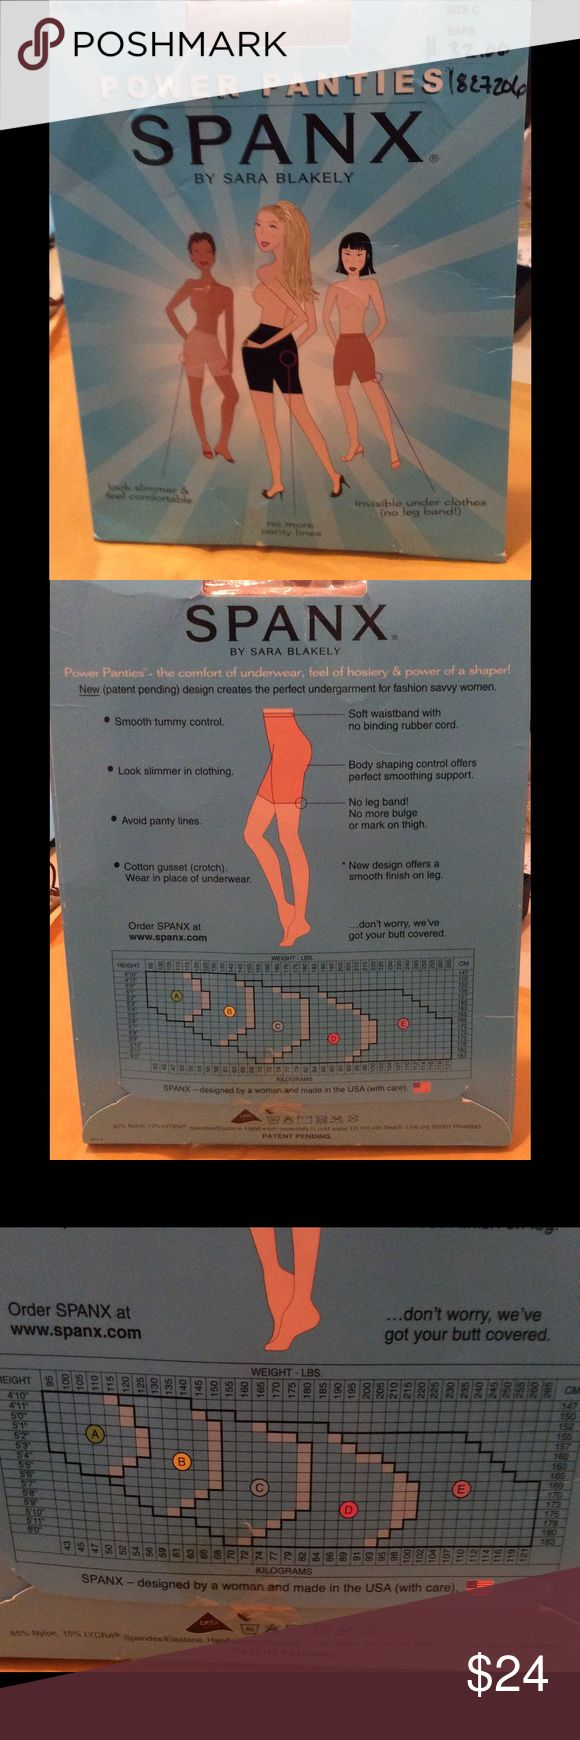 NEW ORIGINAL SPANX SIZE C POWER PANTIES COLOR BARE New in the pack that has some shelf wear to it, please see photos, ORIGINAL SPANX, POWER PANTIES, SIZE C COLOR BARE. PERFORMANCE UNDERWEAR THAT SLIMS TUMMY, THIGHS AND REAR, NO PANTY LINES, WITH A CITTON GUSSET SO YOU CAN WEAR THEM AS PANTIES...NON SMOKING HOME, BUNDLES WELCOMED OR MAKE SN OFFER AND LOOK YOUR BEST THIS HOLIDAY SEASON ...THANK YOU FOR LOOKING, I HAVE THESE IN BLACK TOO... SPANX Intimates & Sleepwear Shapewear